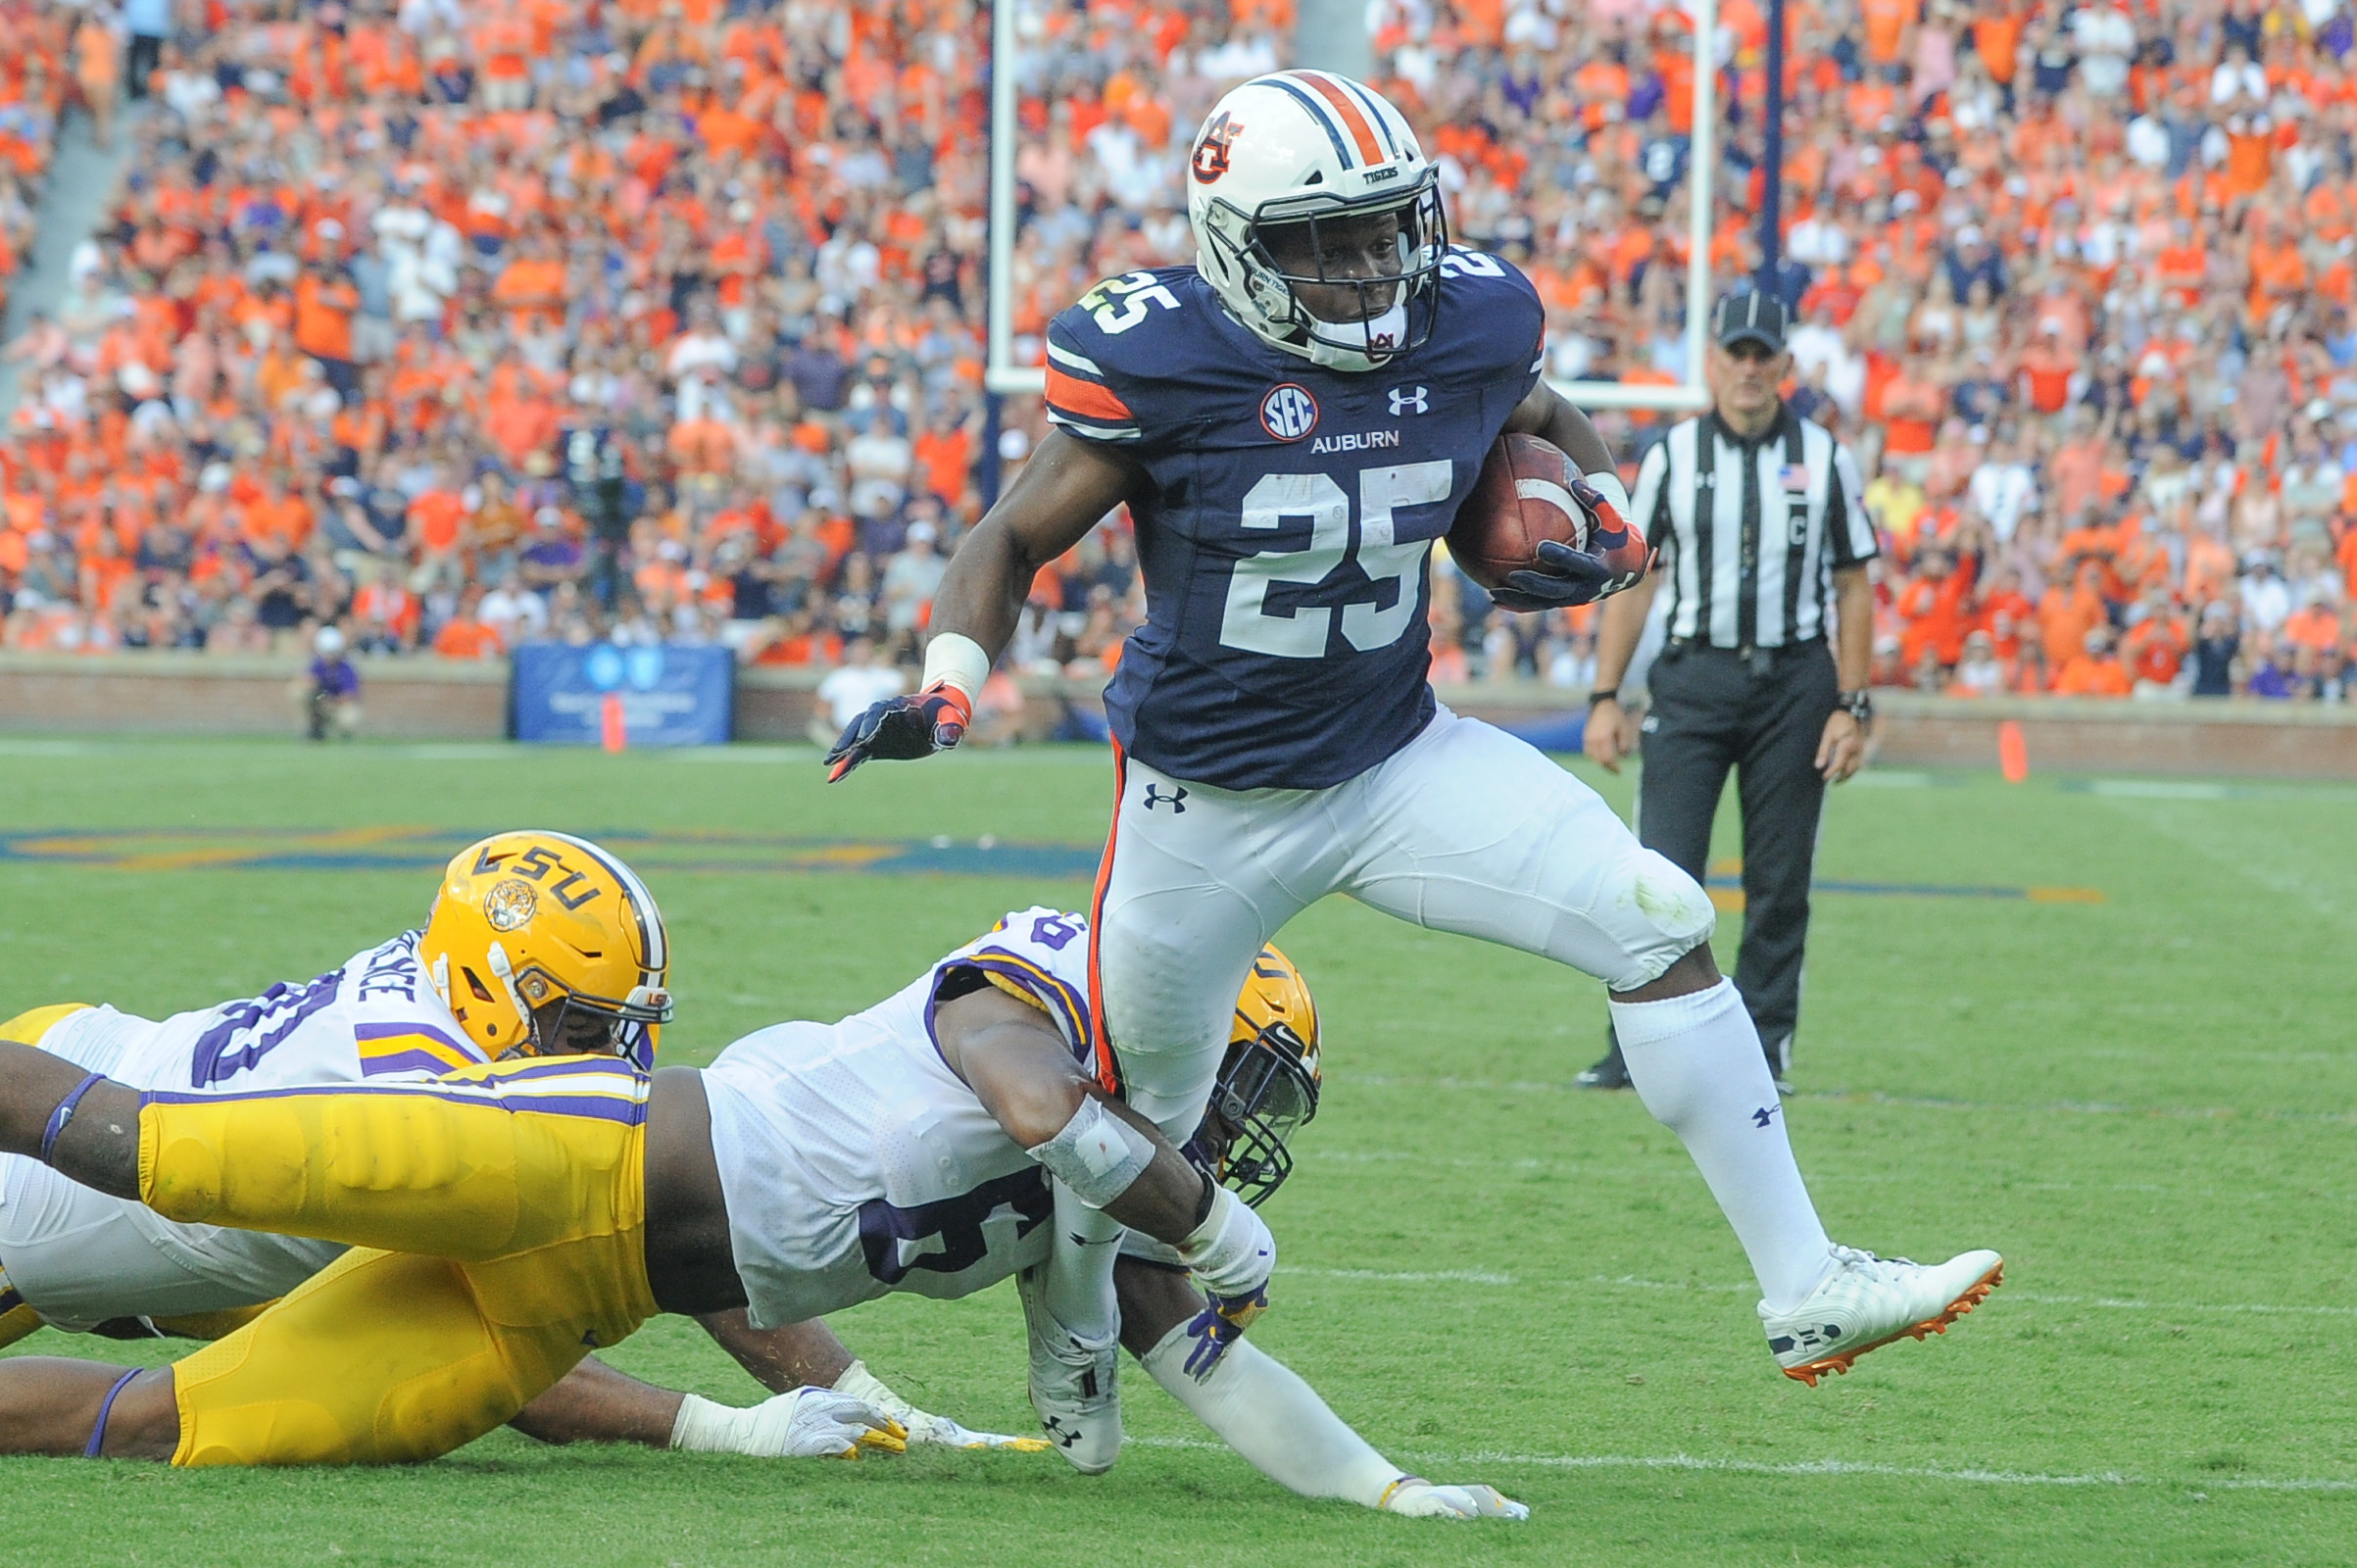 Auburn Tigers running back Shaun Shivers (25) breaks a tackle by LSU Tigers linebacker Jacob Phillips (6) during the first half of Saturday's game, at Jordan Hare Stadium in Auburn. (Contributed by Jeff Johnsey)